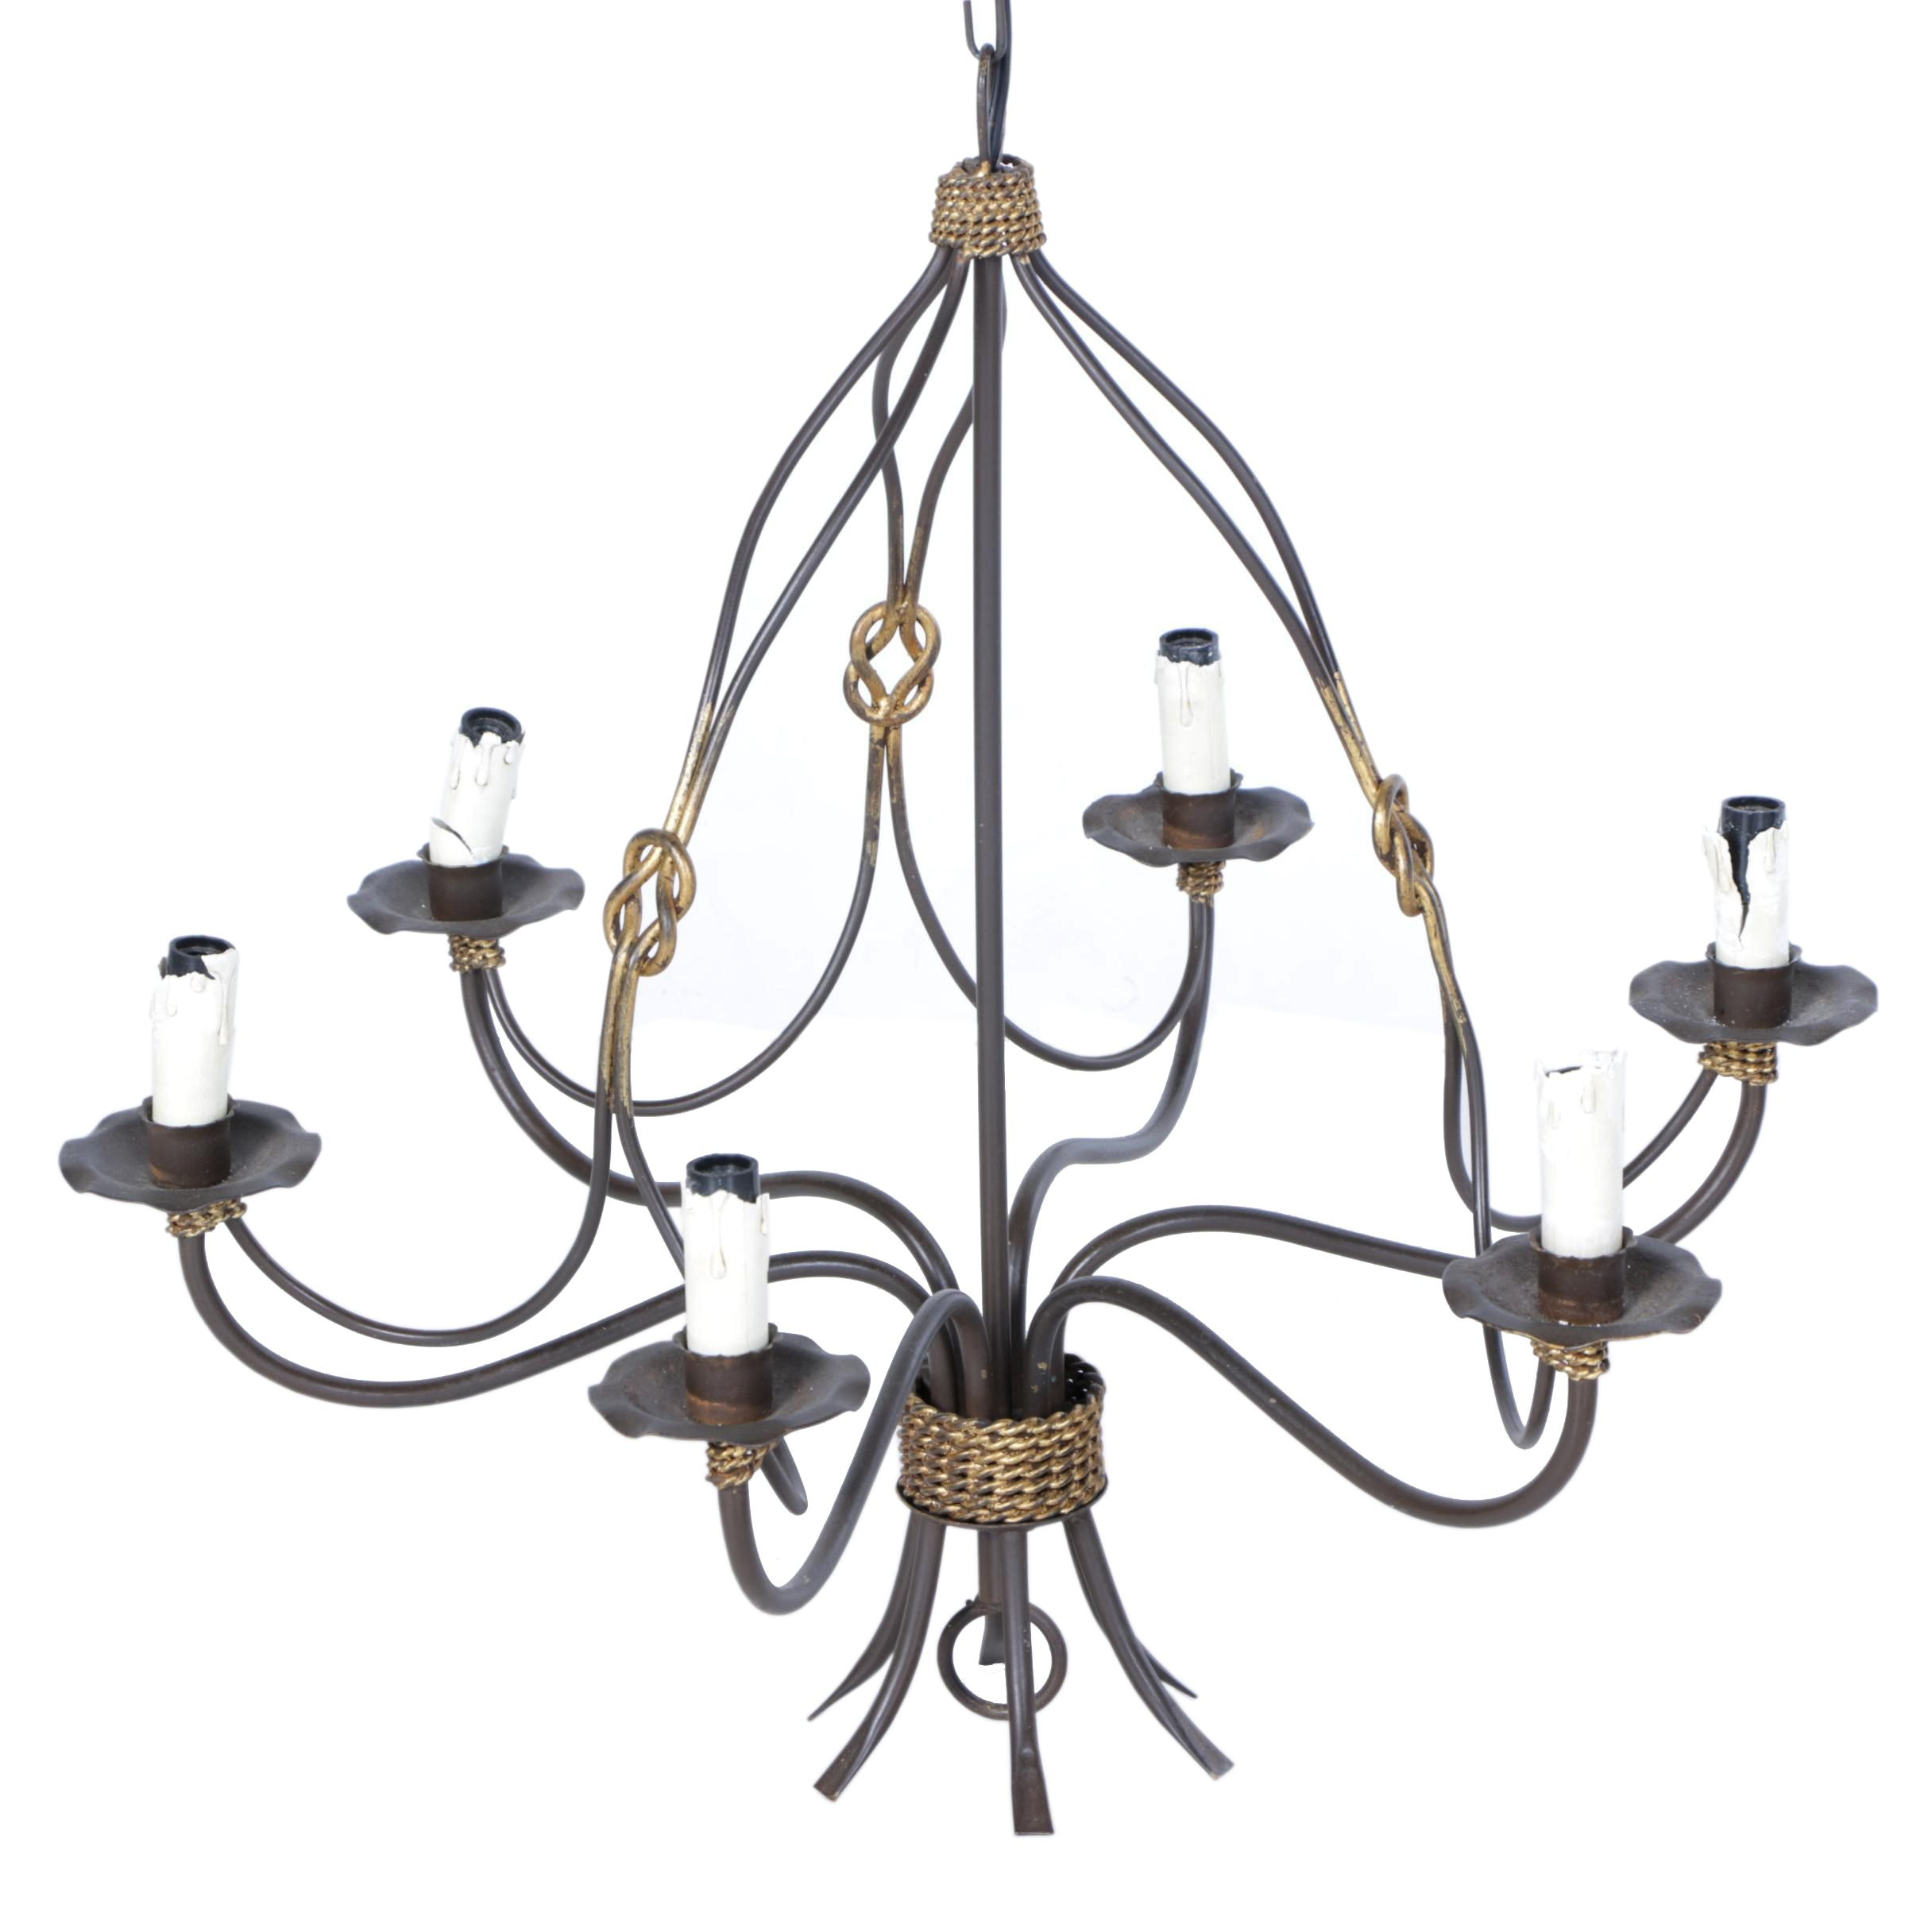 Iron Bar Knotted Rustic Hanging Chandelier